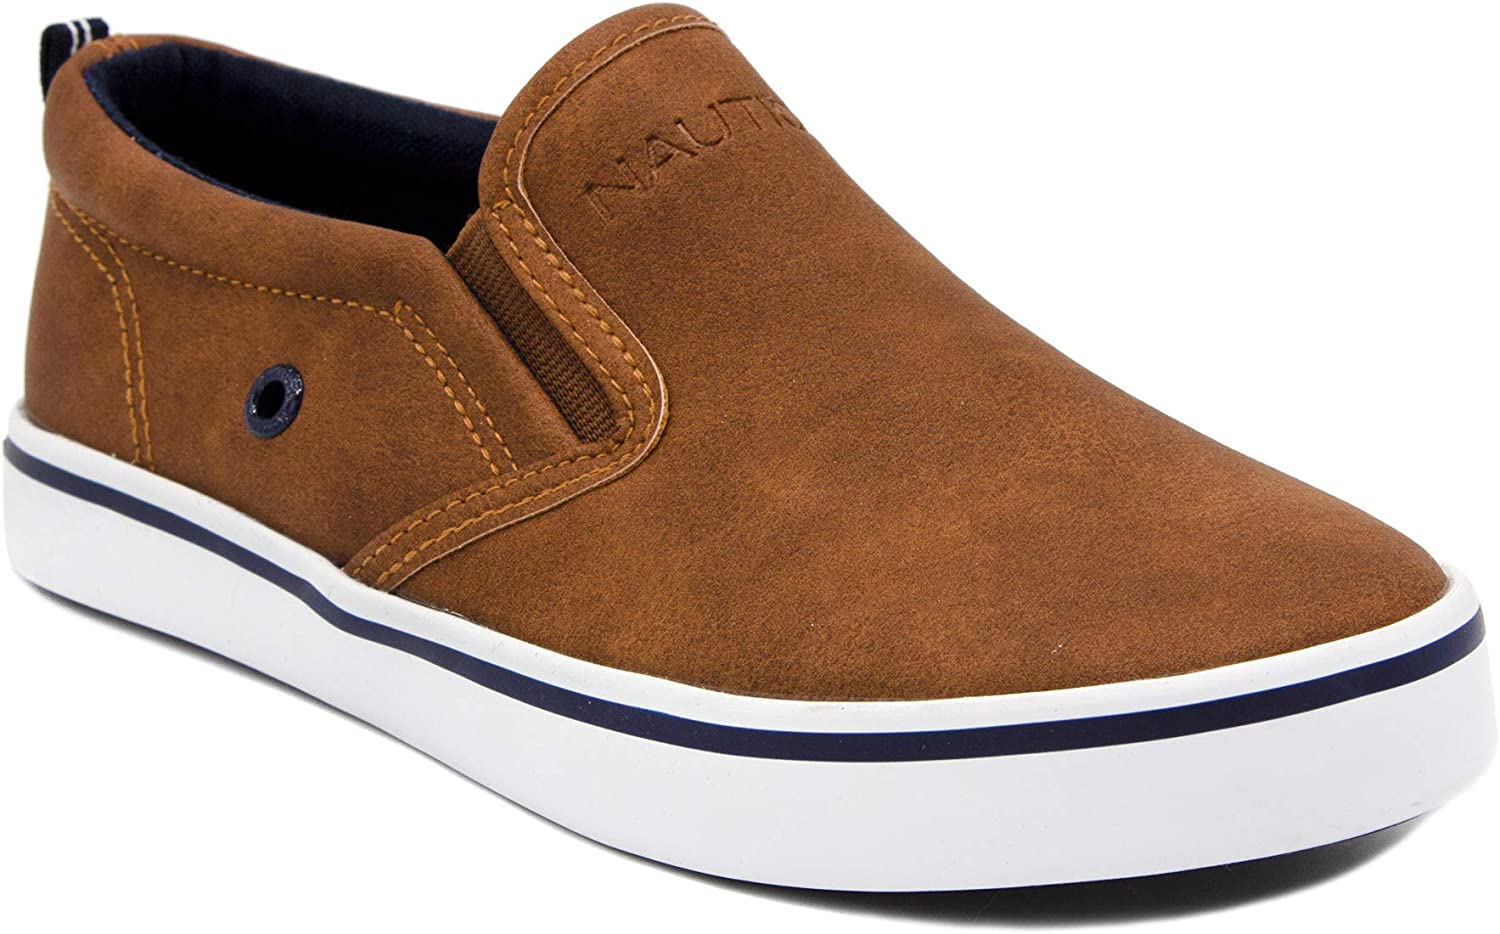 Nautica Kid's Slip-On Casual Shoe Athletic Sneaker - Youth-Toddler Akeley (Big Kid/Little Kid/Toddler)